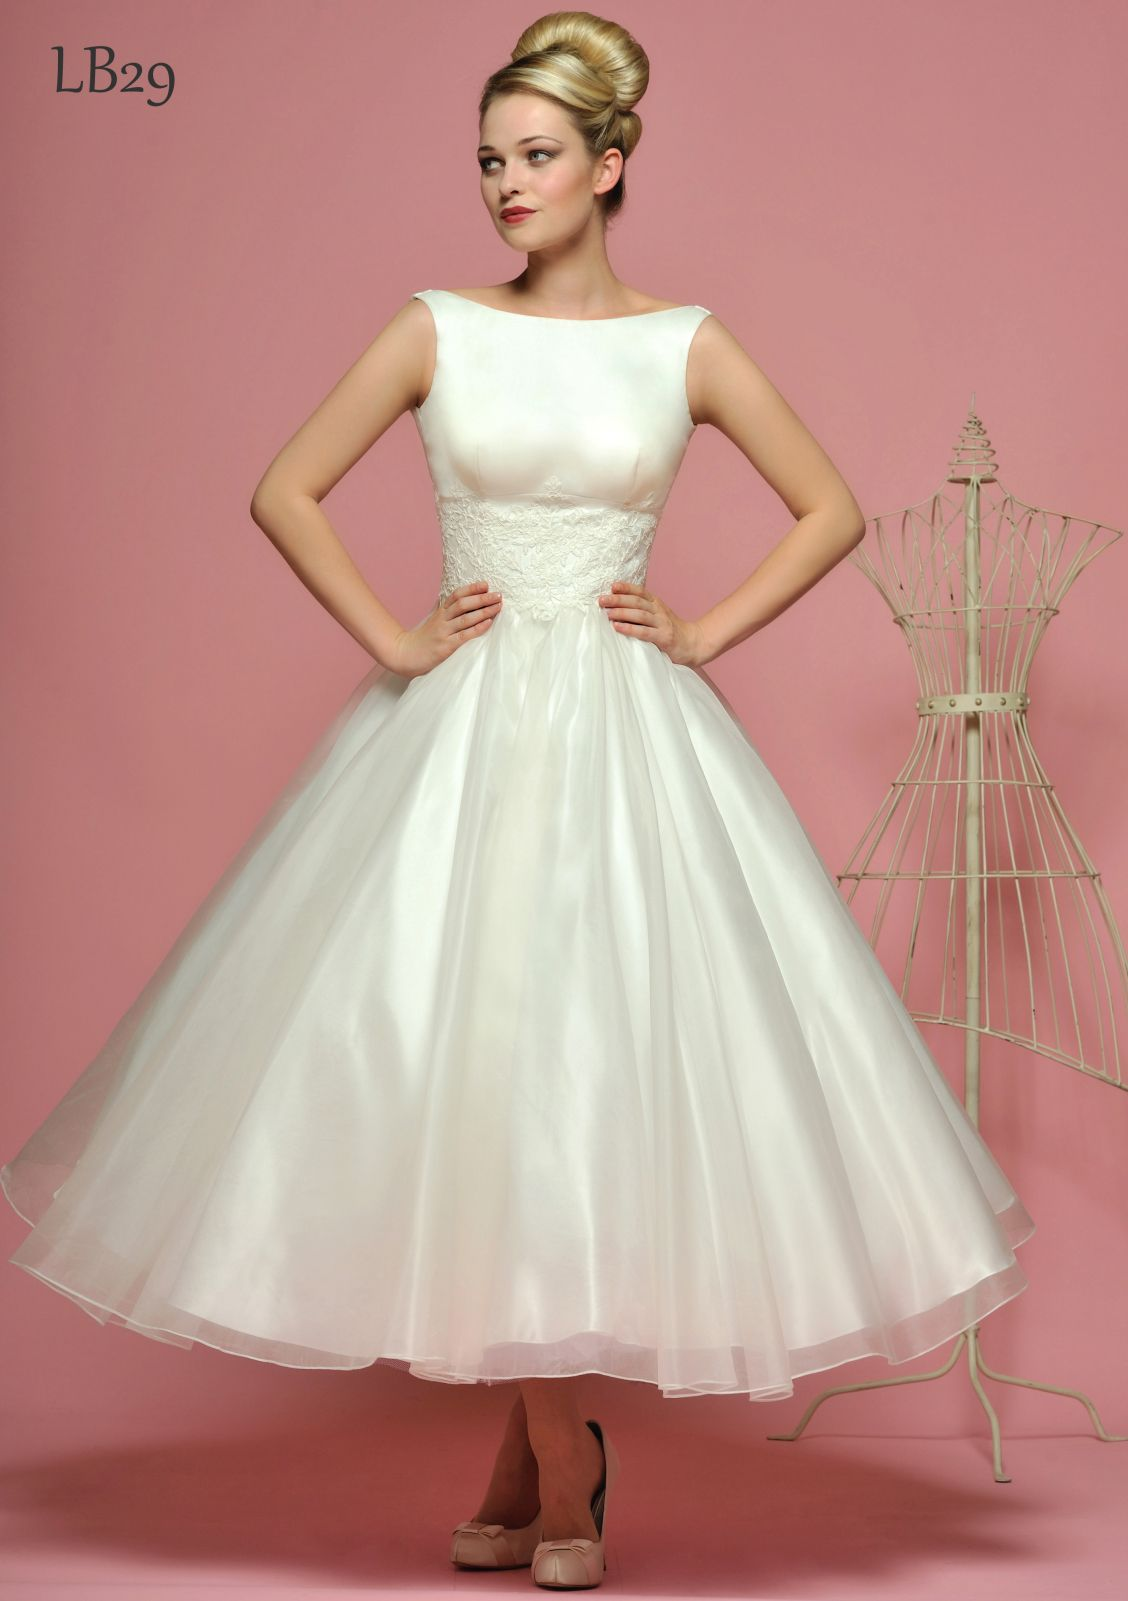 LB29aF from LouLou Bridal | poses | Pinterest | Años, Vestiditos y ...